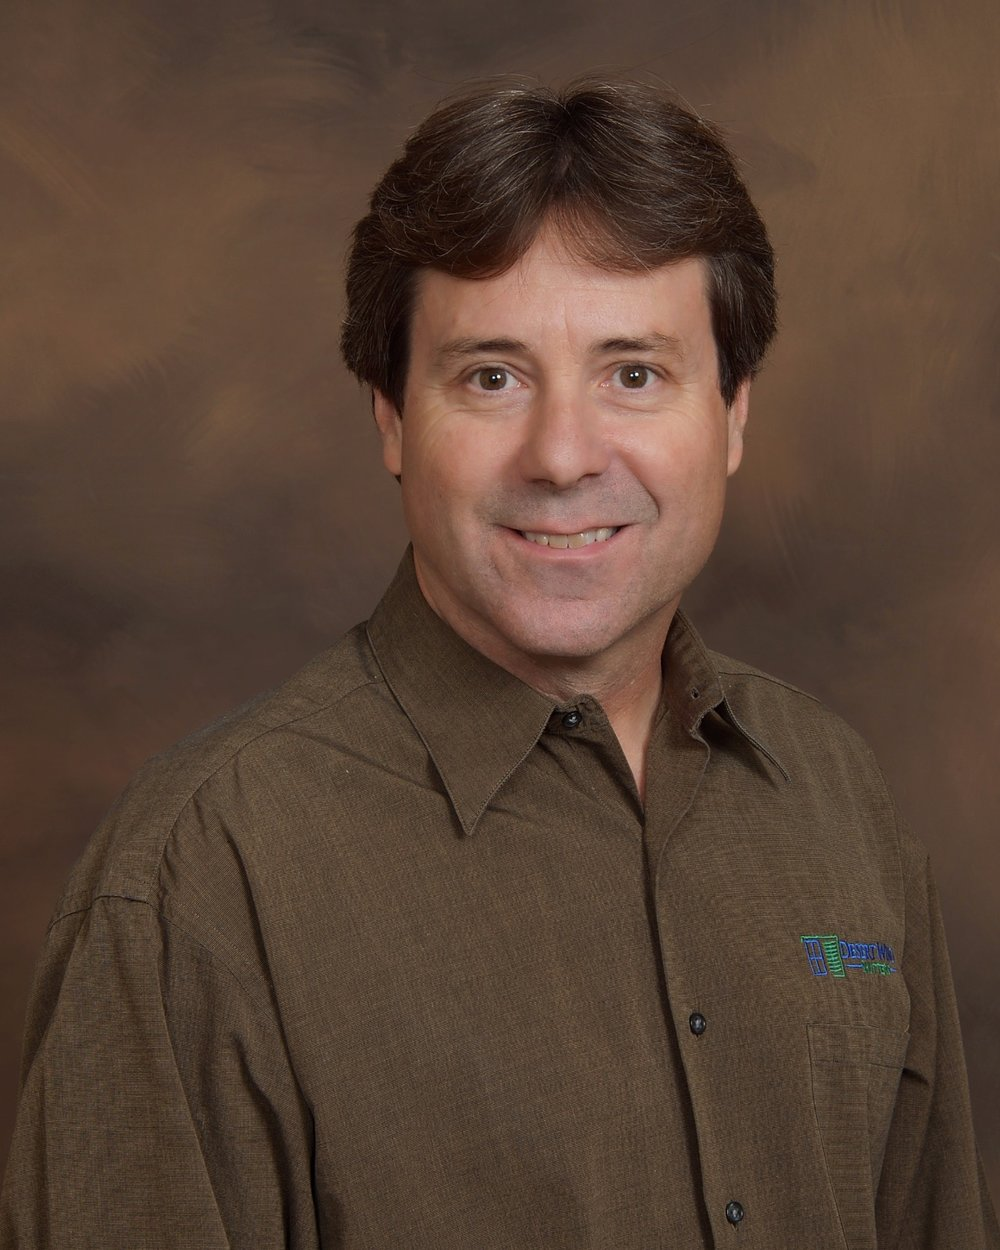 John White - John White entered the shutter business in 1984 and founded Desert Wind in 1996. Beginning with designing shutters for interior designers and a select few private clients, he began manufacturing his own shutters in 1998, shifting his primary focus to homeowners. John is uniquely qualified to discuss all facets of the custom window coverings, including materials, construction and finishing and is committed to assist the homeowner to find the ideal solution for their window covering needs. John also personally handles customer relations, installation and service, ensuring the very best in customer satisfaction.